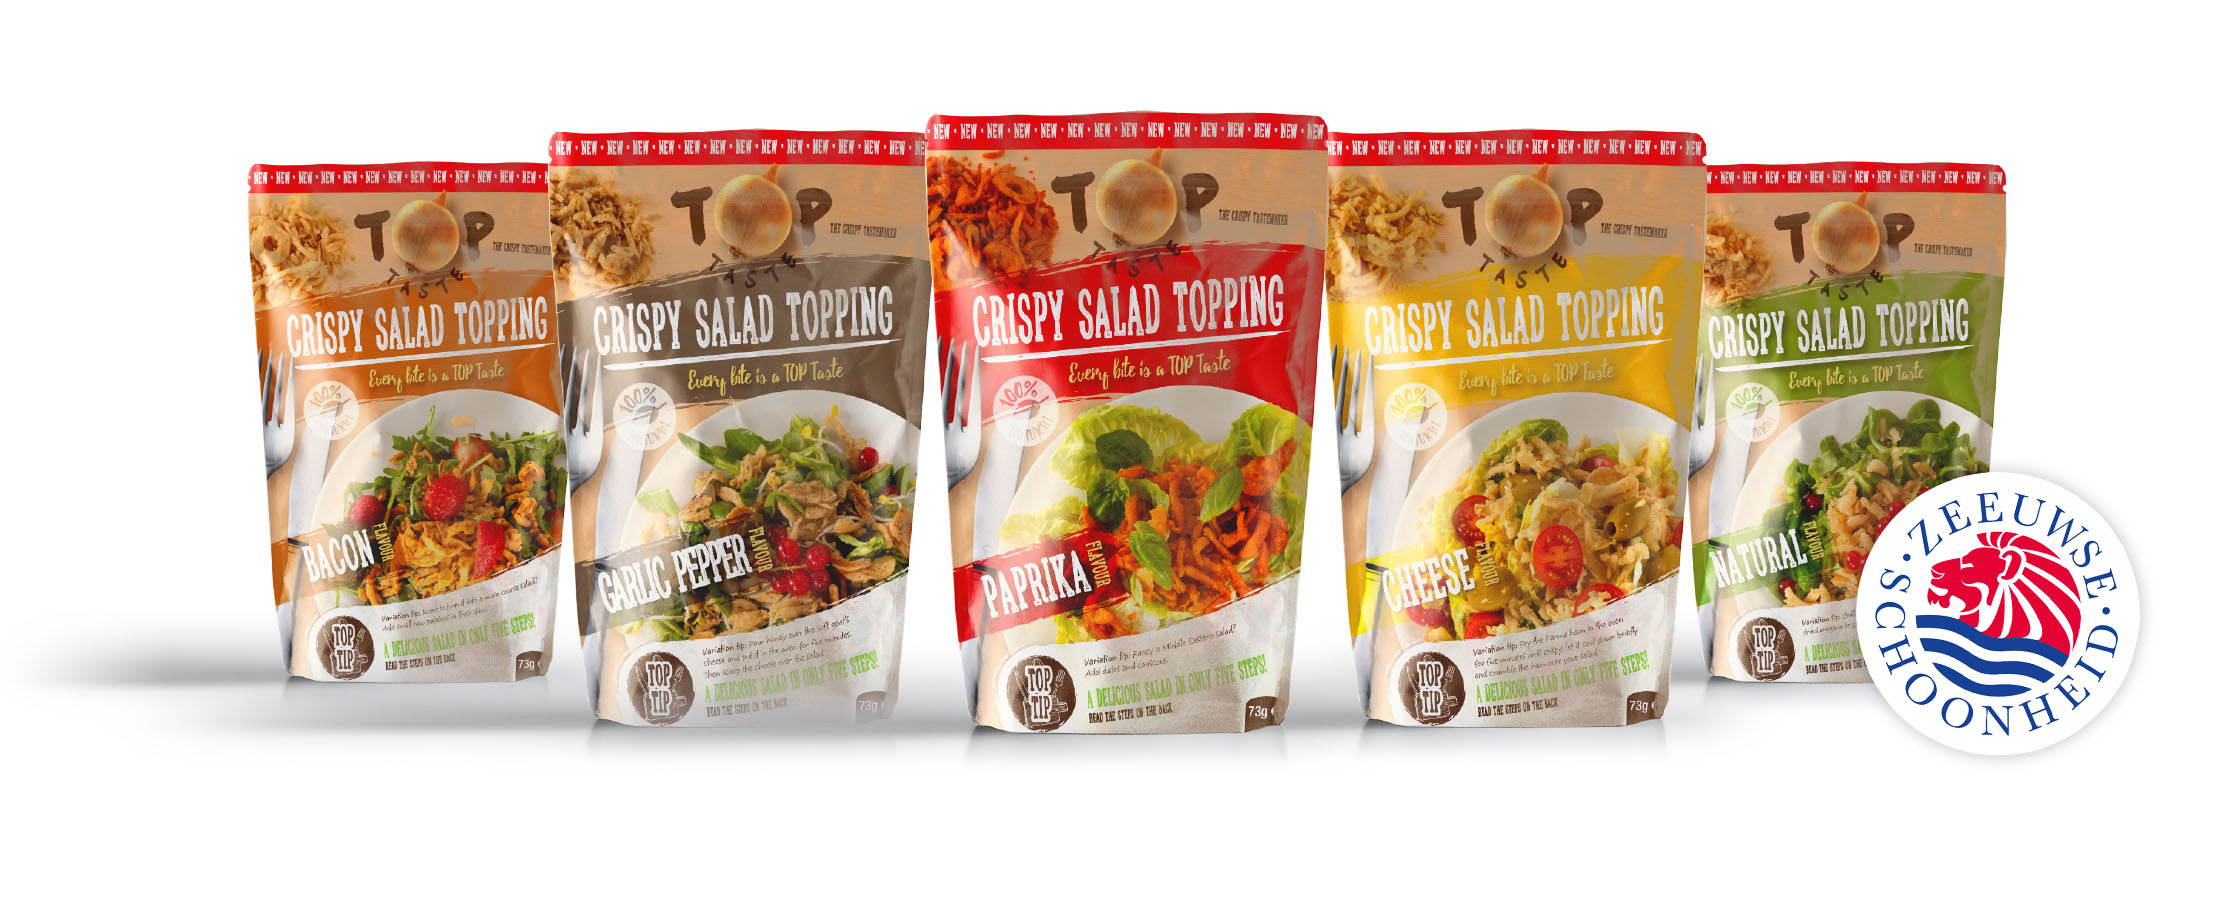 THE CRISPY TASTEMAKER ∙ SALAD TOPPING ∙ FIVE FLAVOURS